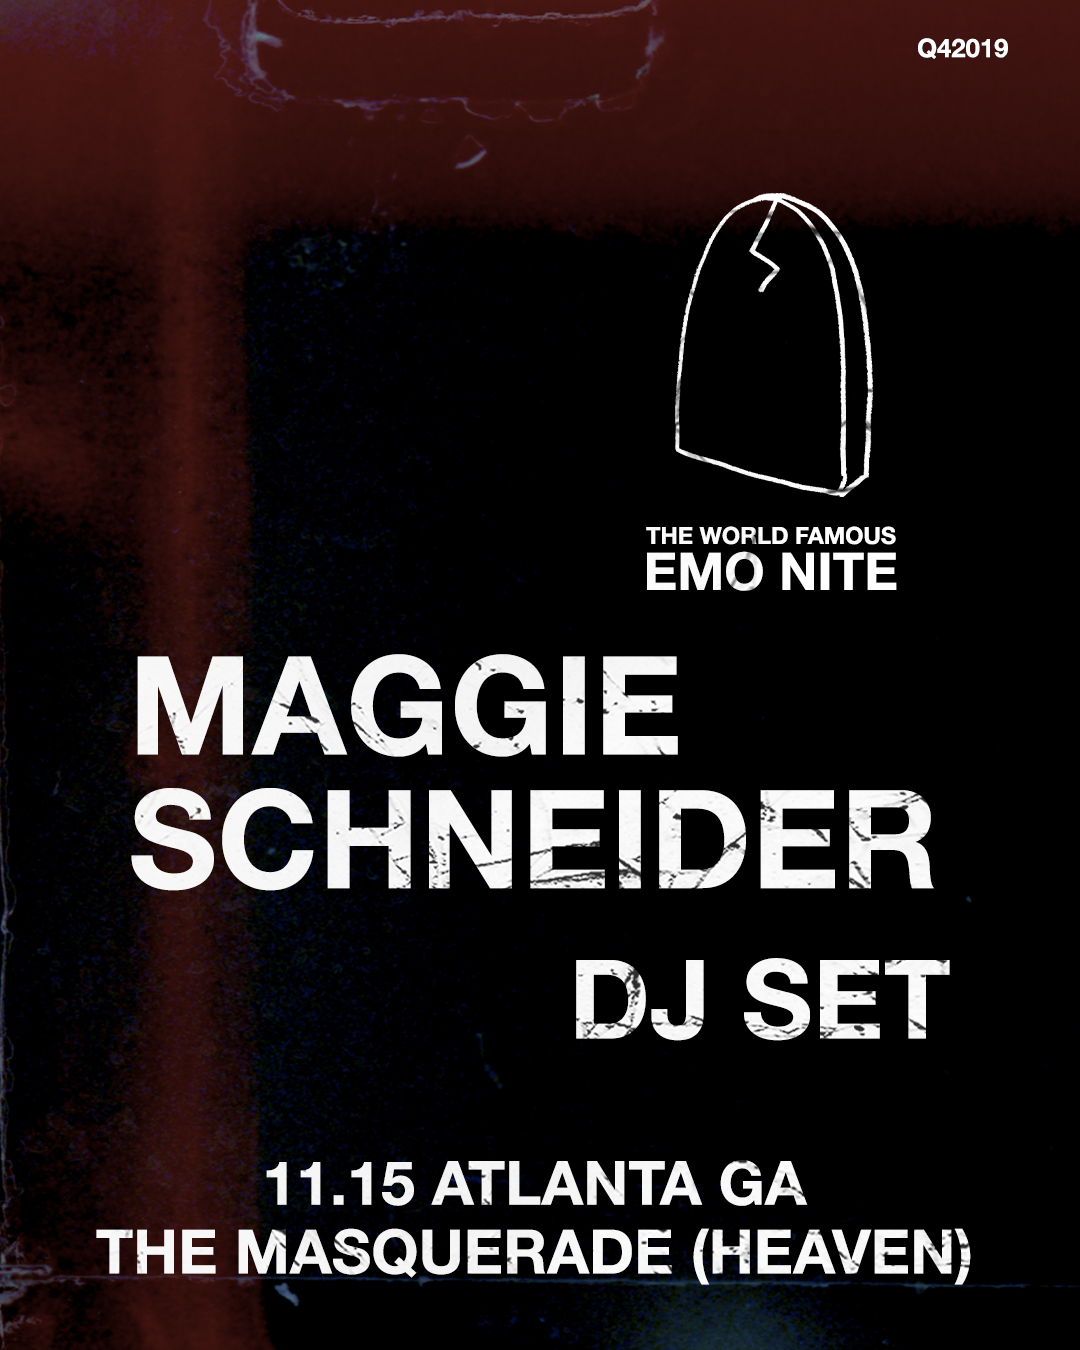 November 15 - Guest DJ at Emo Nite